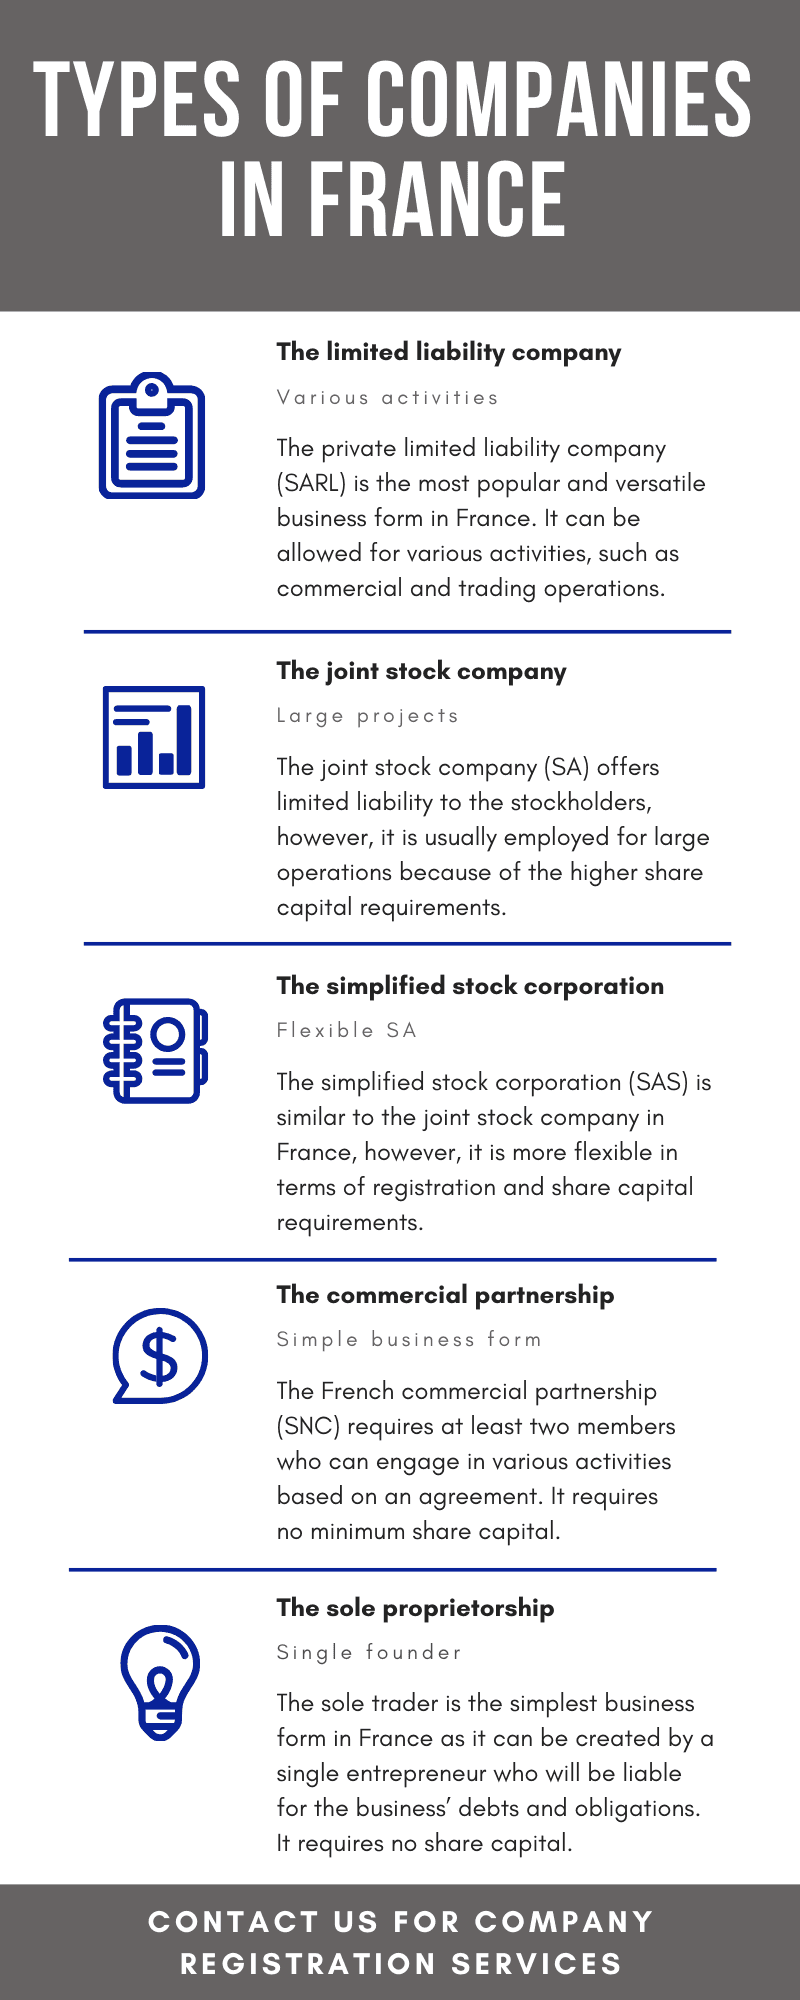 Types-of-companies-in-France